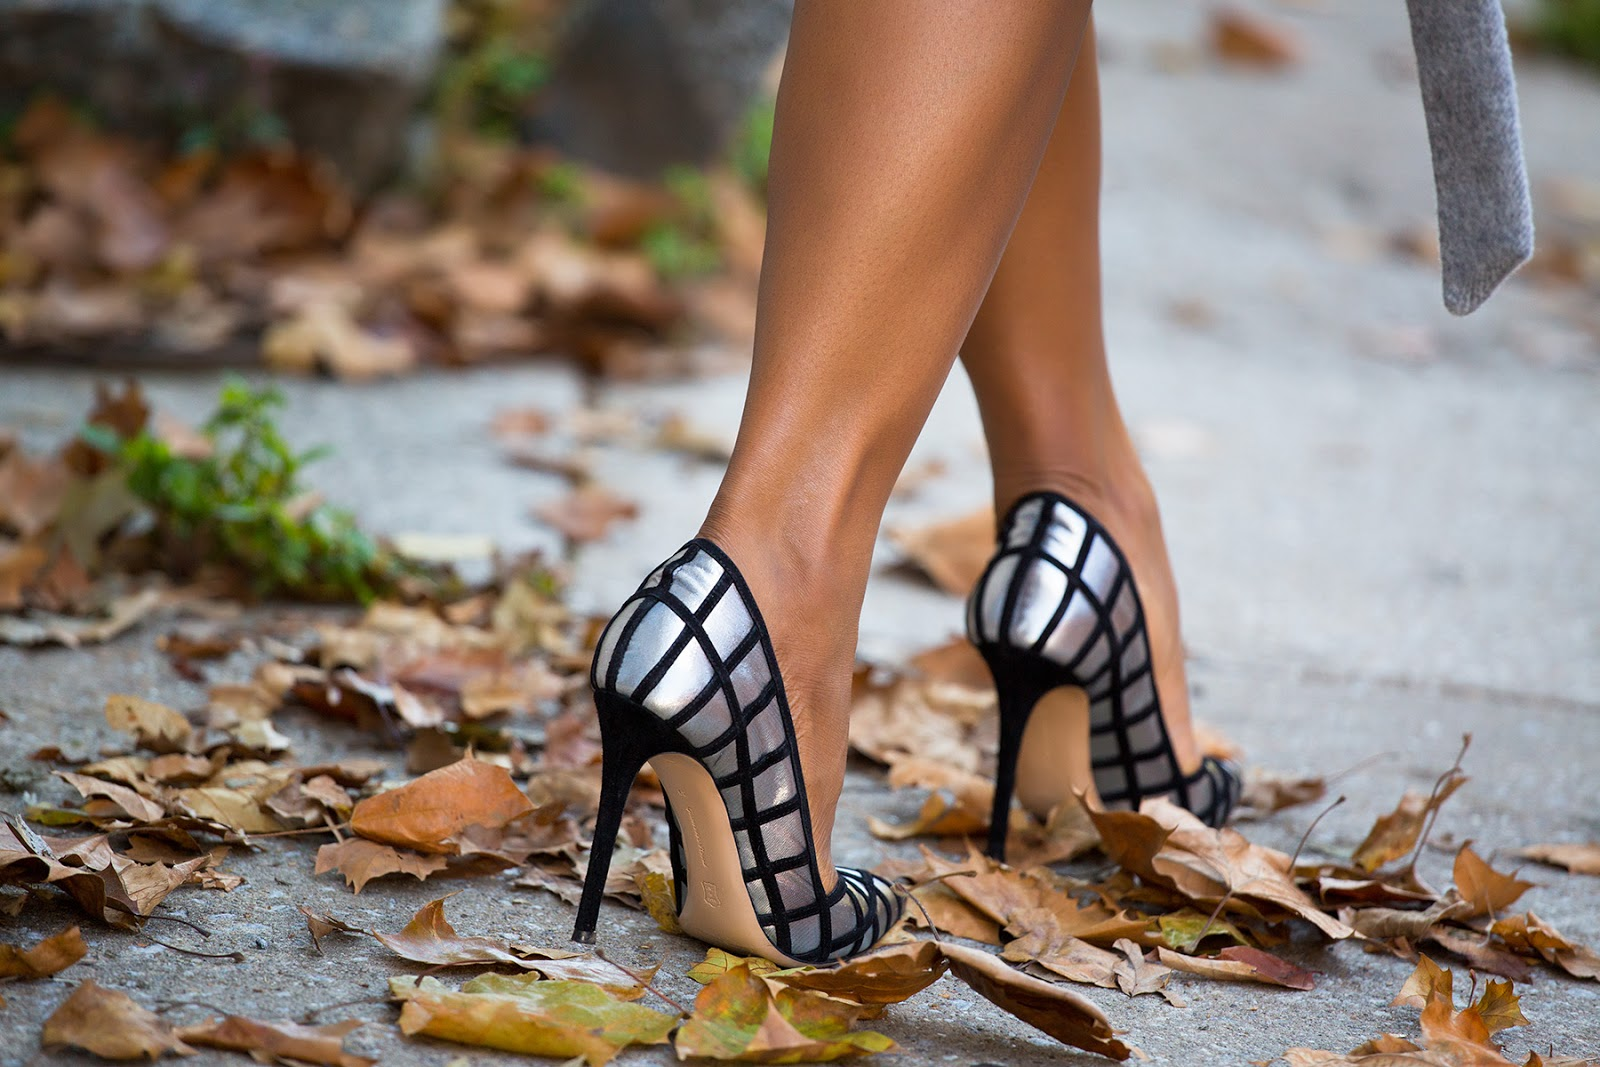 Gianvito rossi pumps, www.jadore-fashion.com